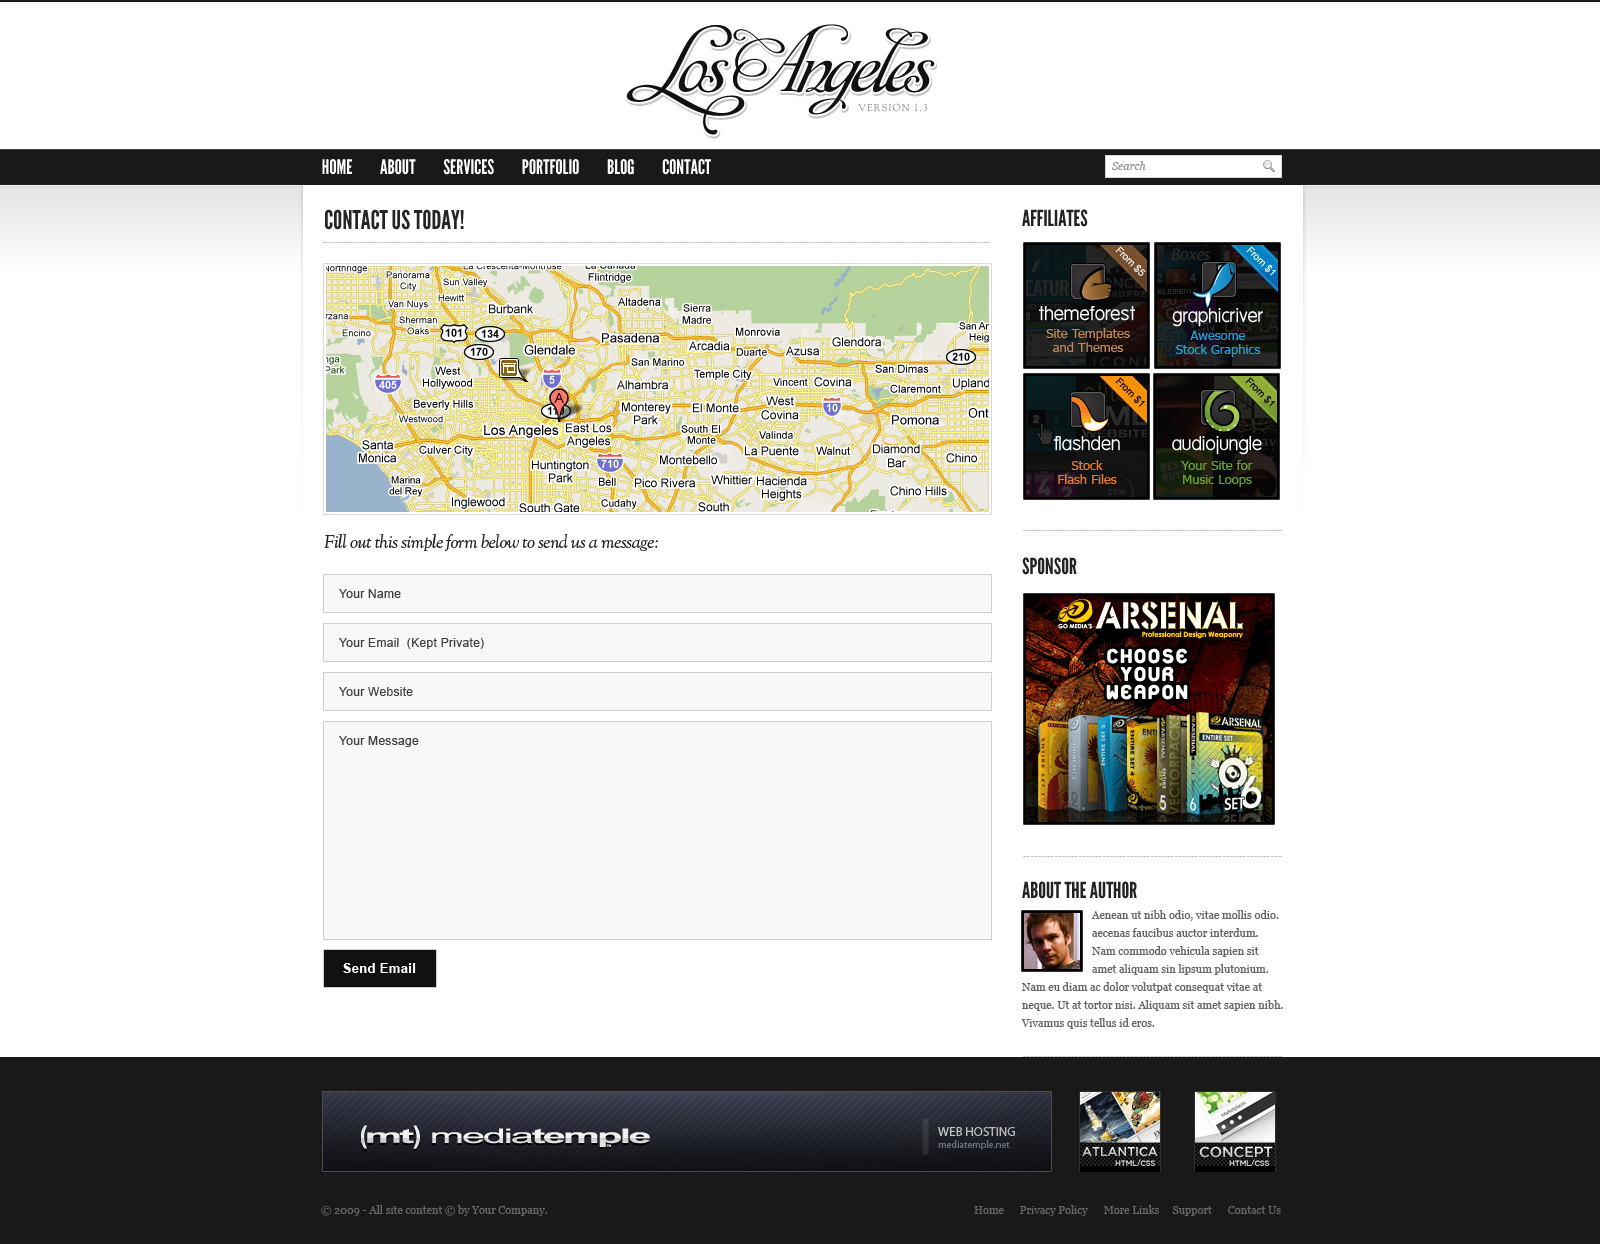 Los Angeles - Premium Portfolio Template